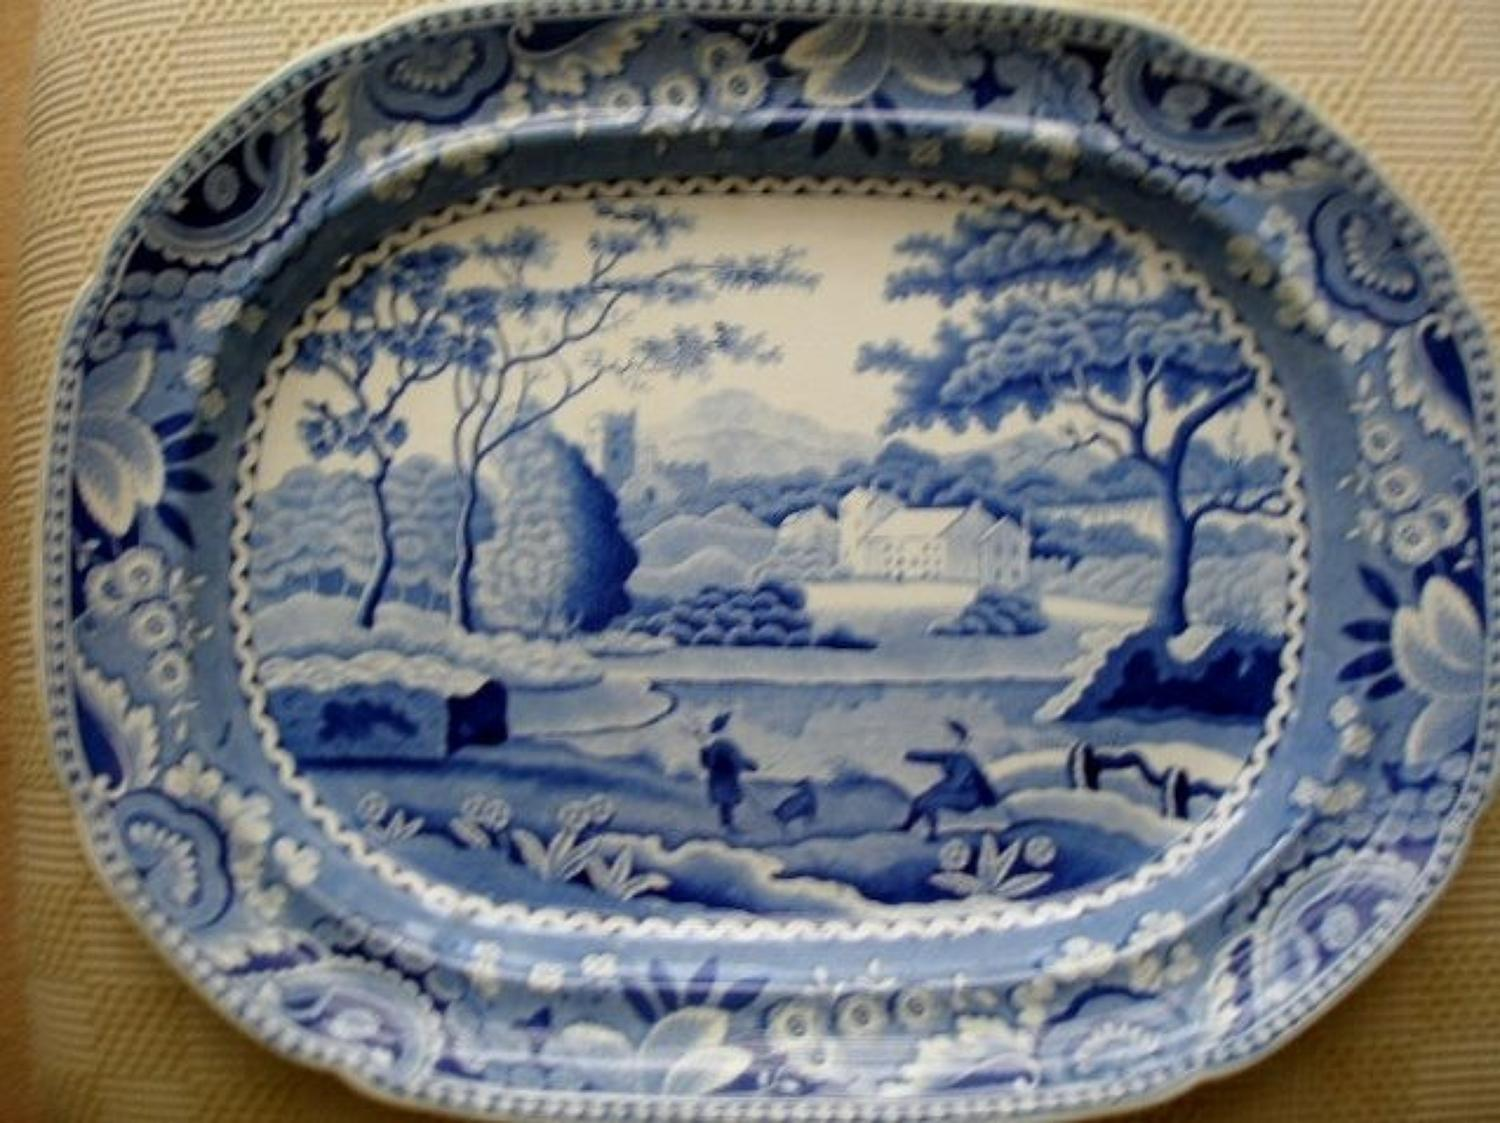 Lakeside Meeting - Blue and white 19th Century platter